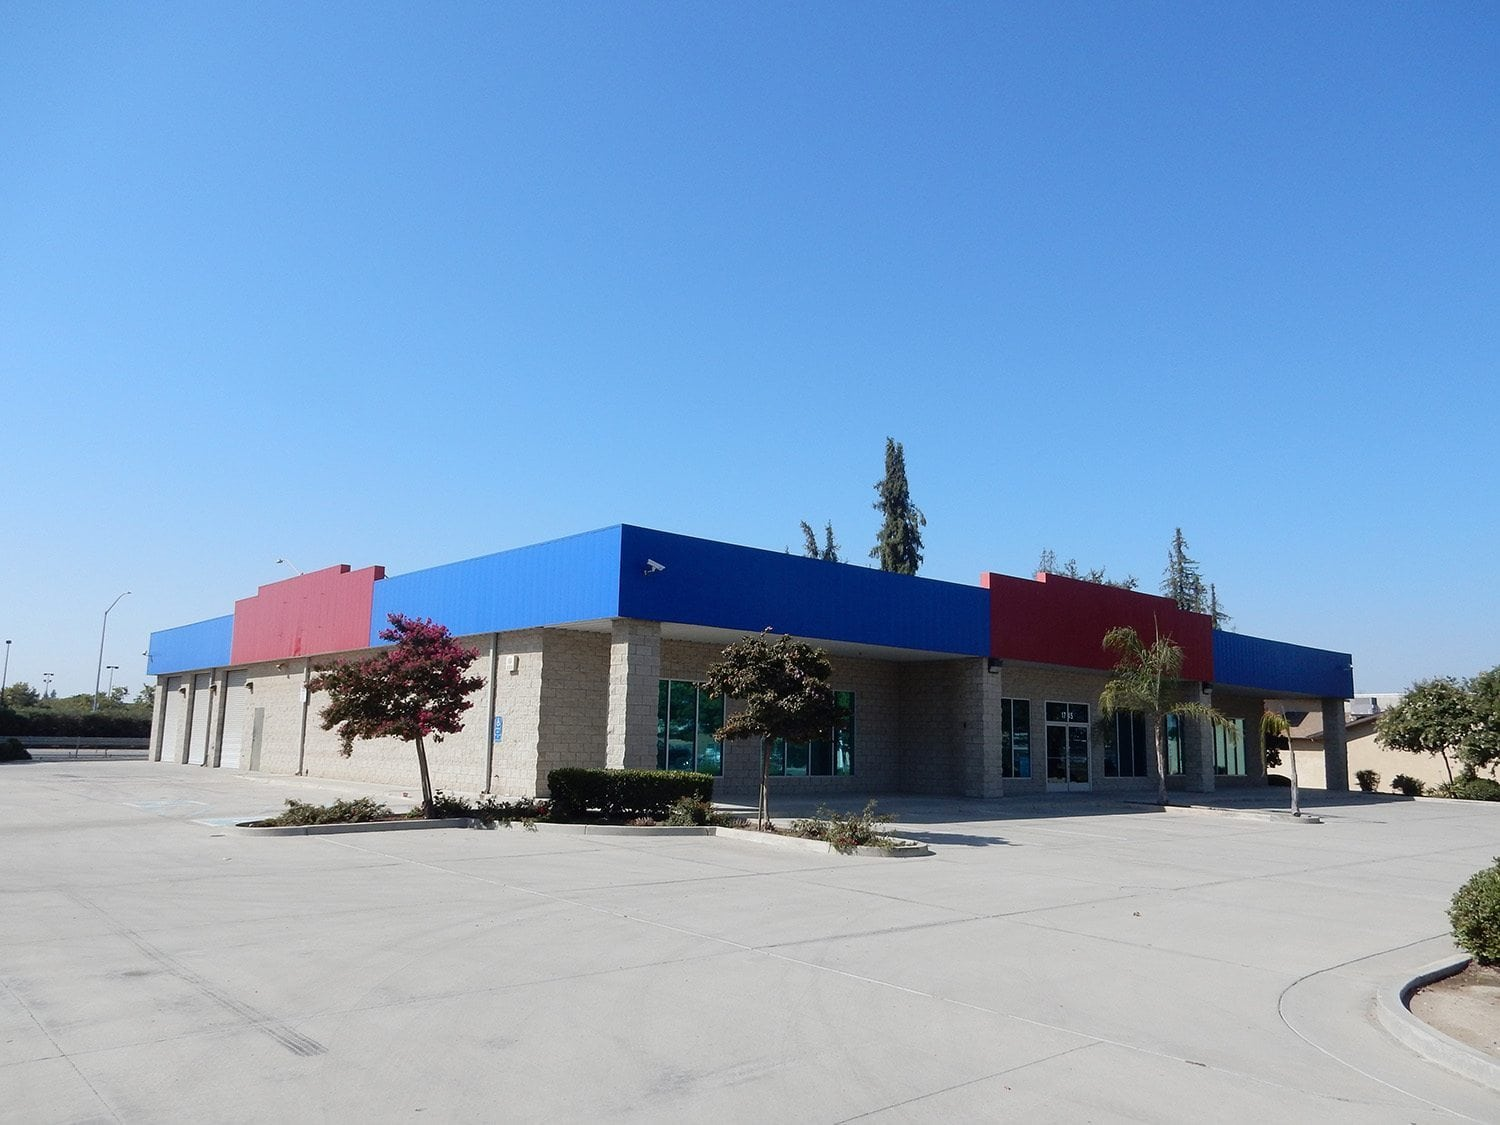 1745 E Mineral King Ave - Suite 2| Visalia, CA